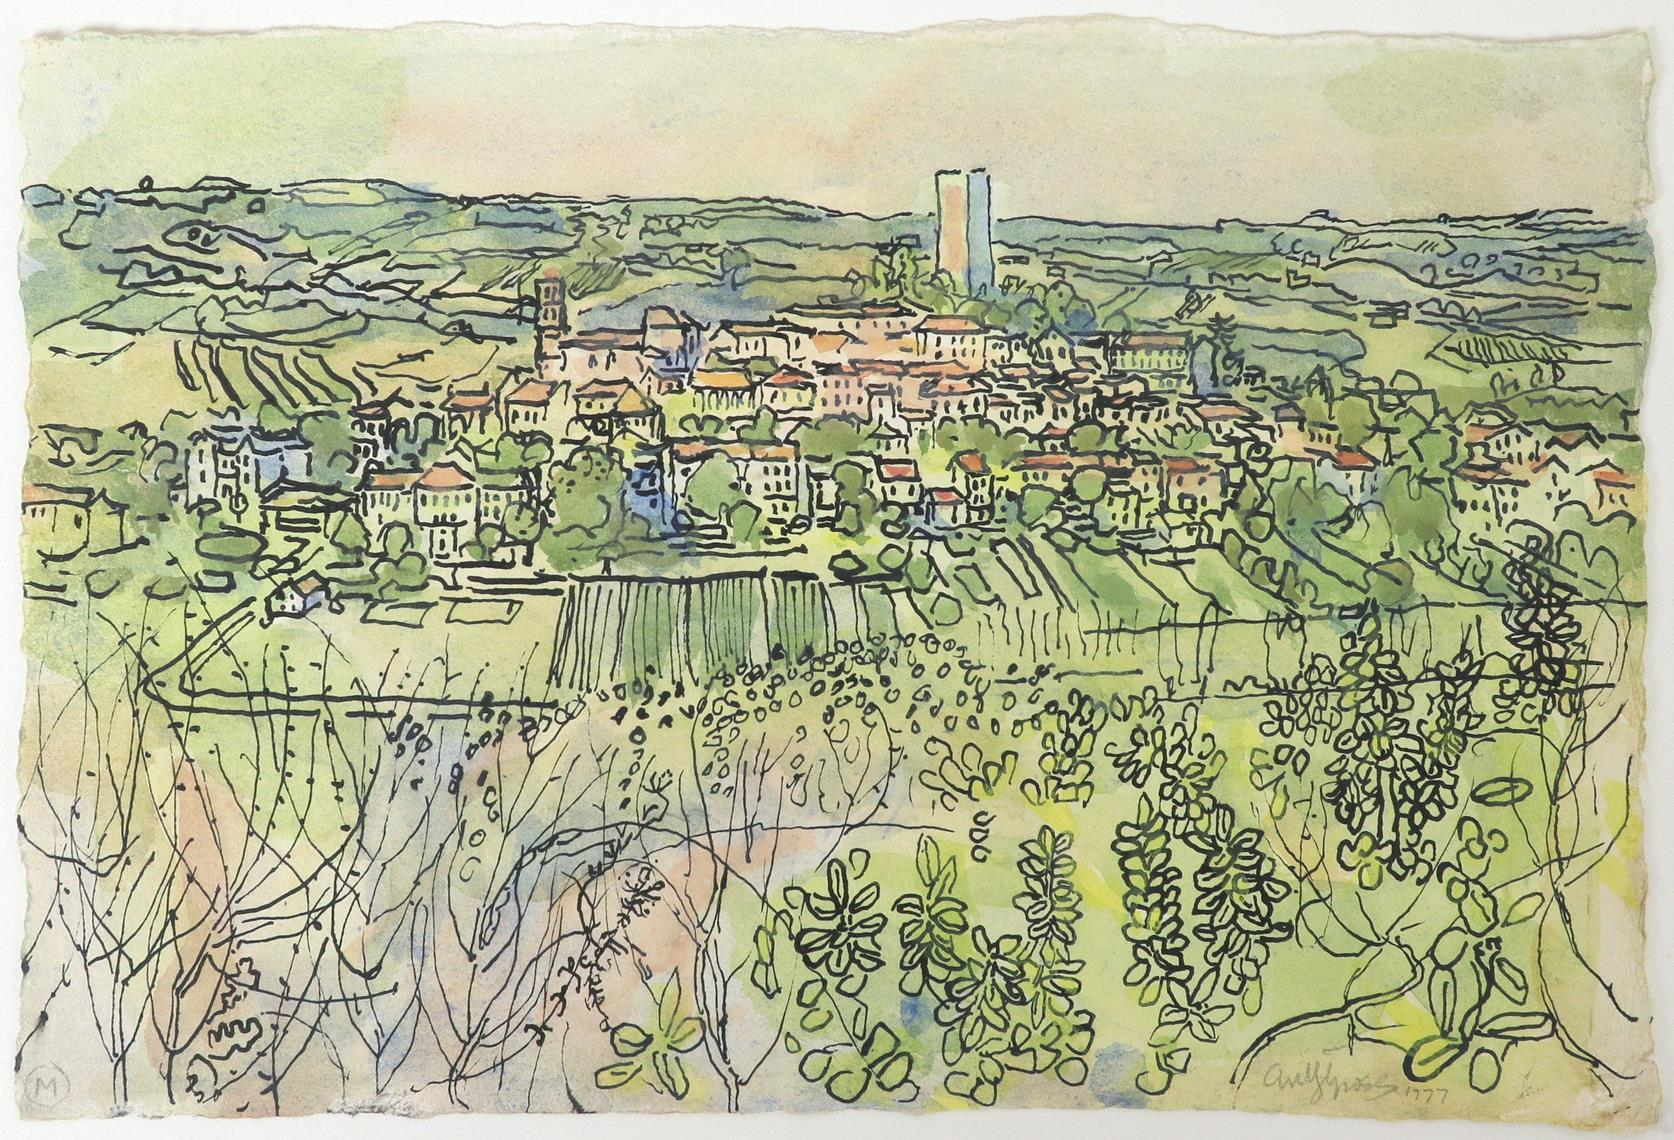 ‡Anthony Gross CBE, RA (1905-1984) A view of Montcuq, France Signed and dated antyGross 1977 ( - Image 2 of 3